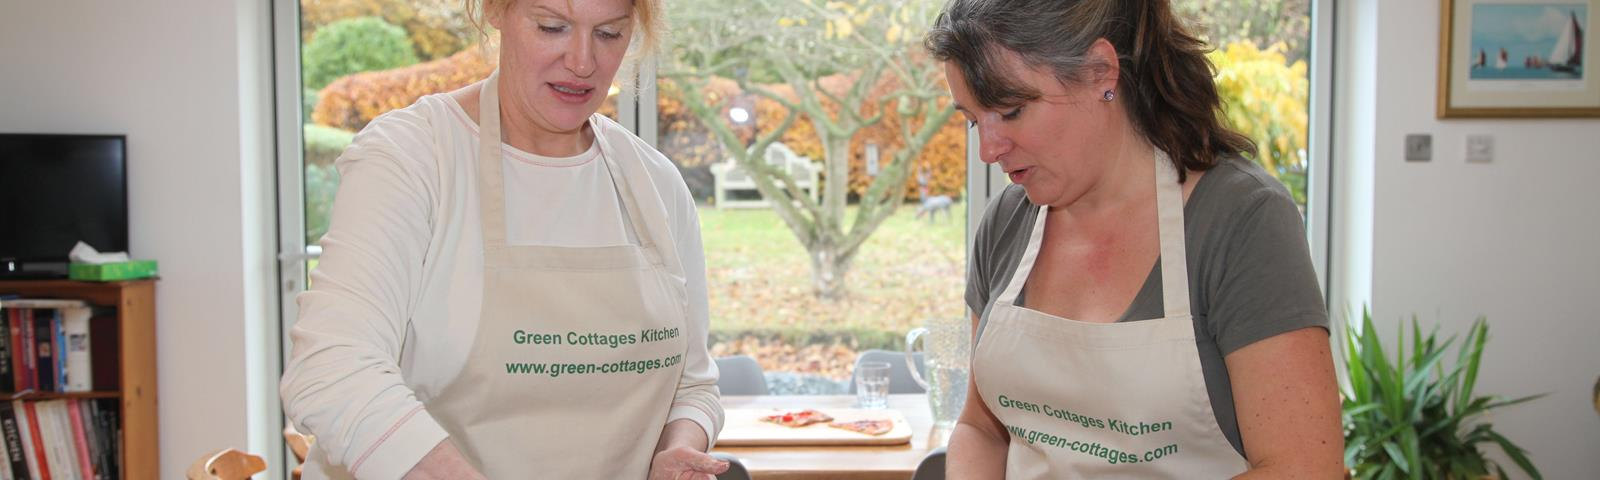 Green Cottages Kitchen - Baking & Cookery Workshops